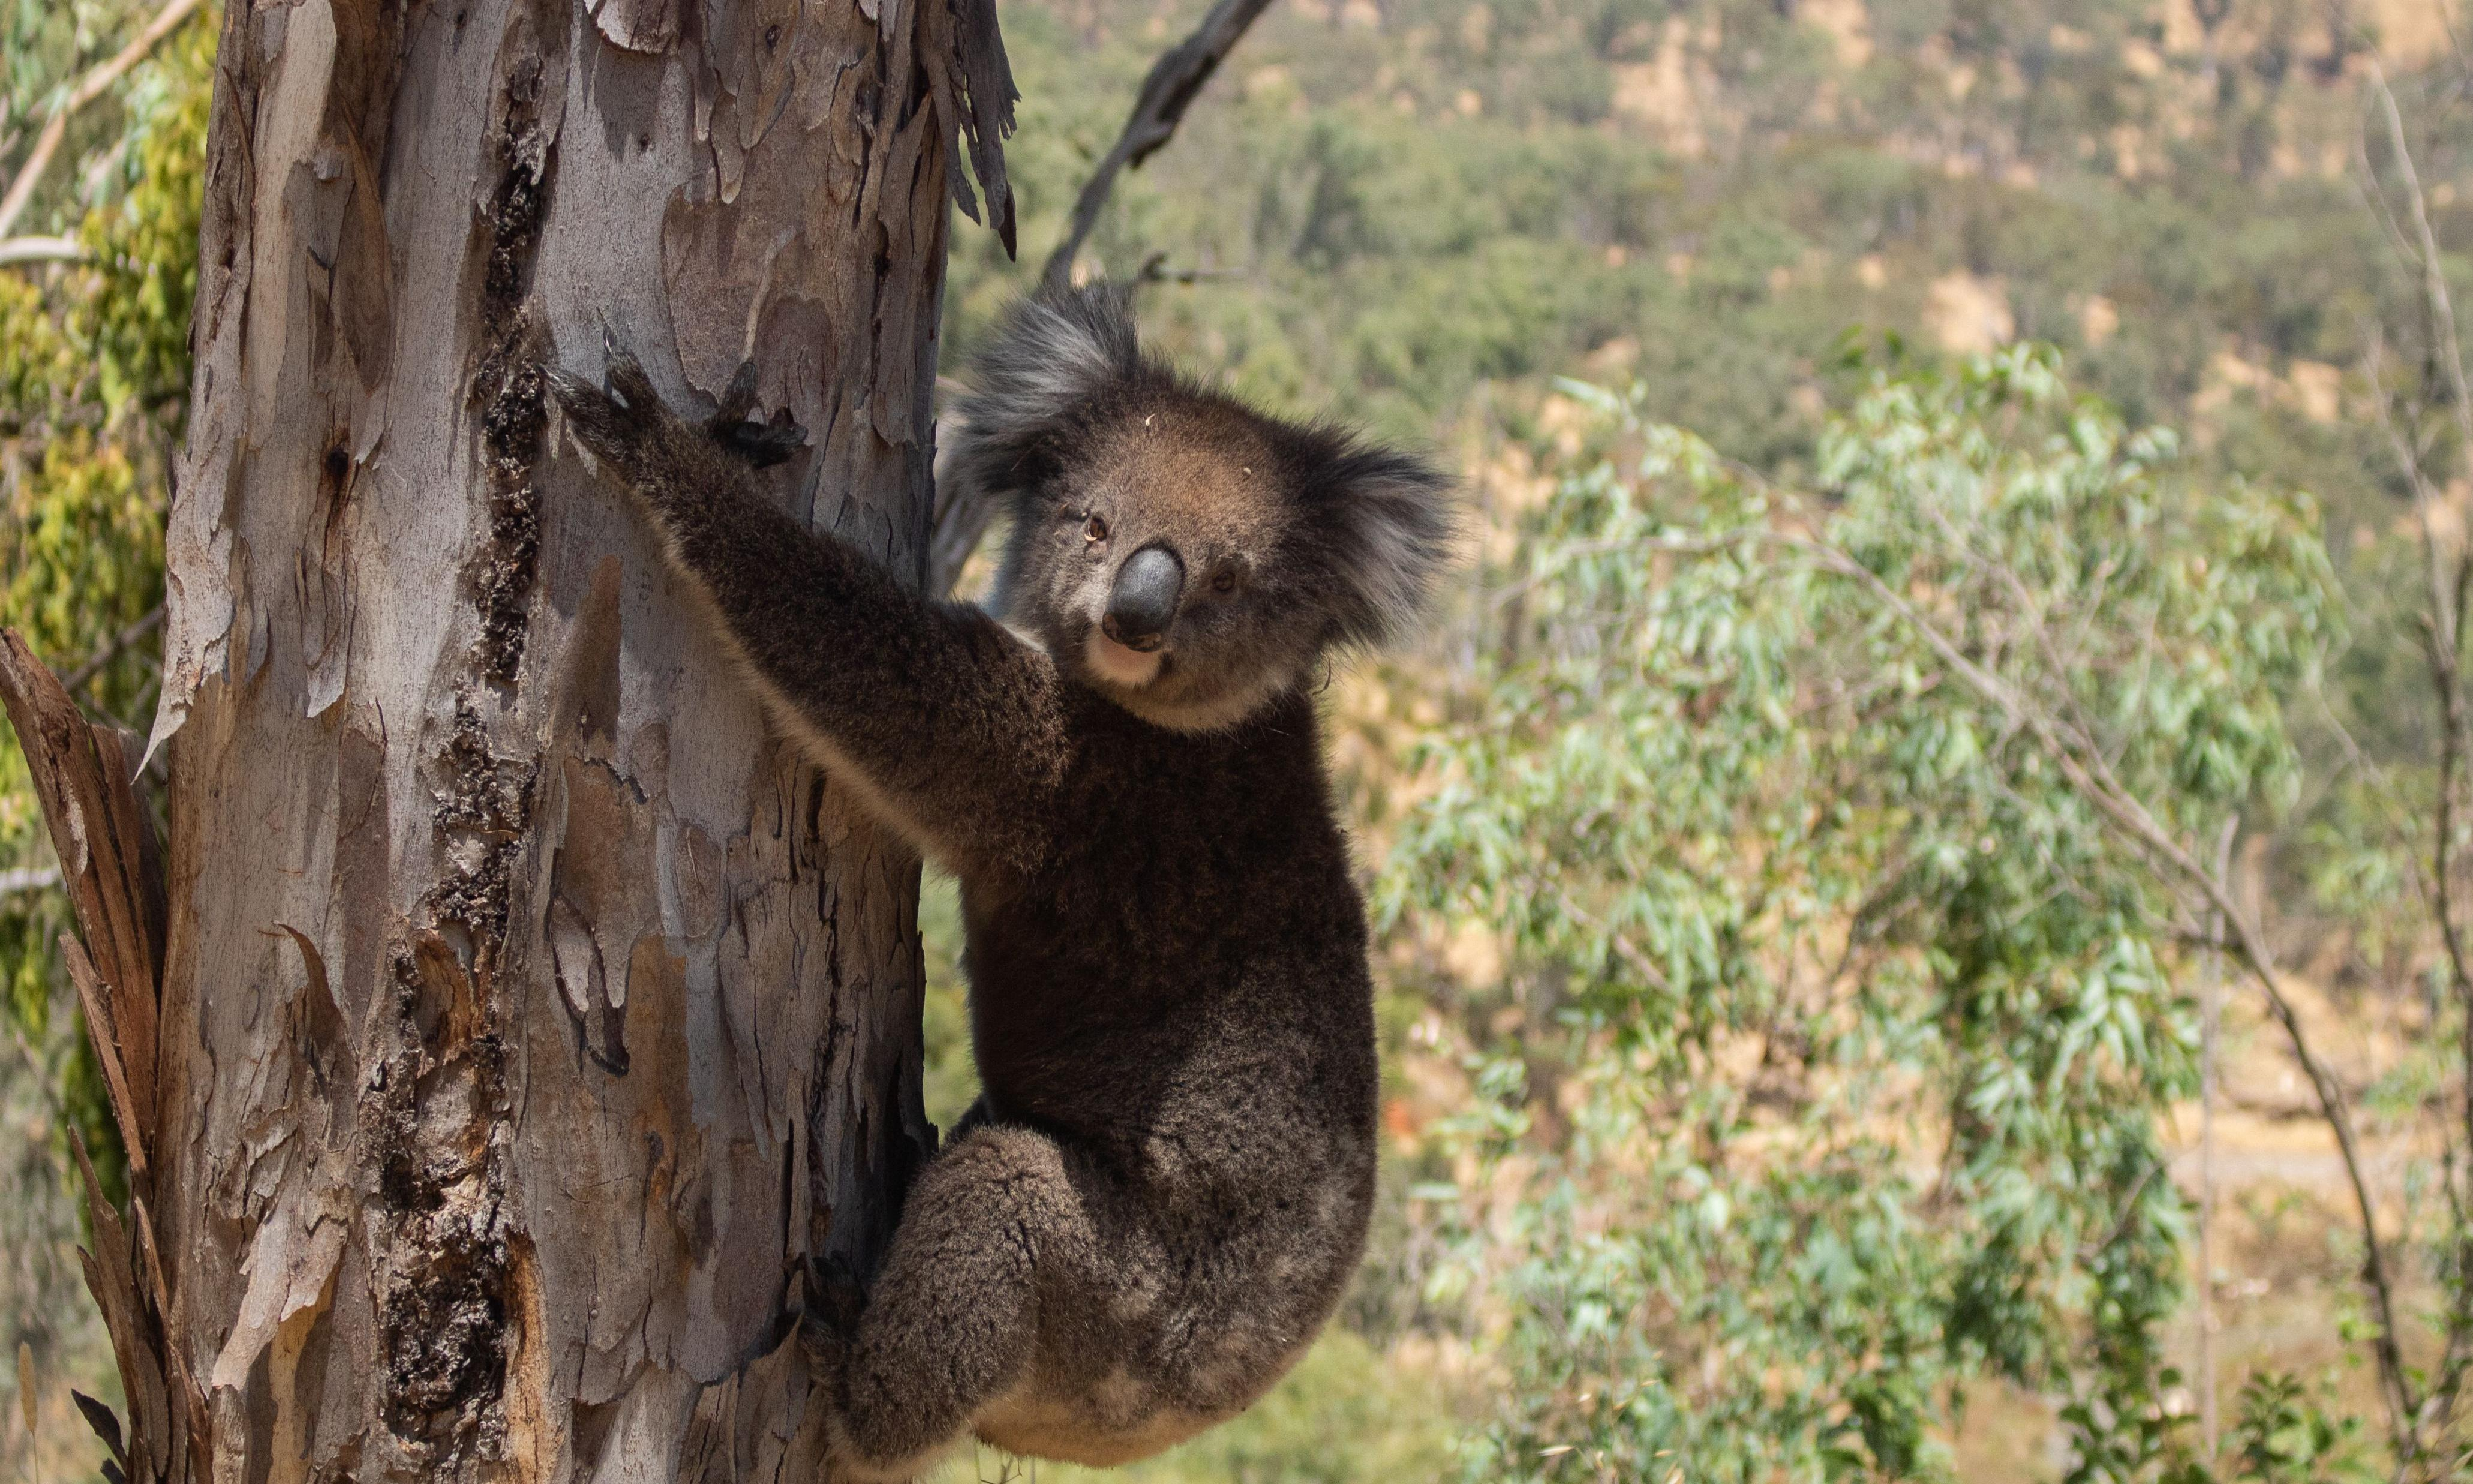 Koala 'massacre': scores of animals found dead or injured after plantation logging